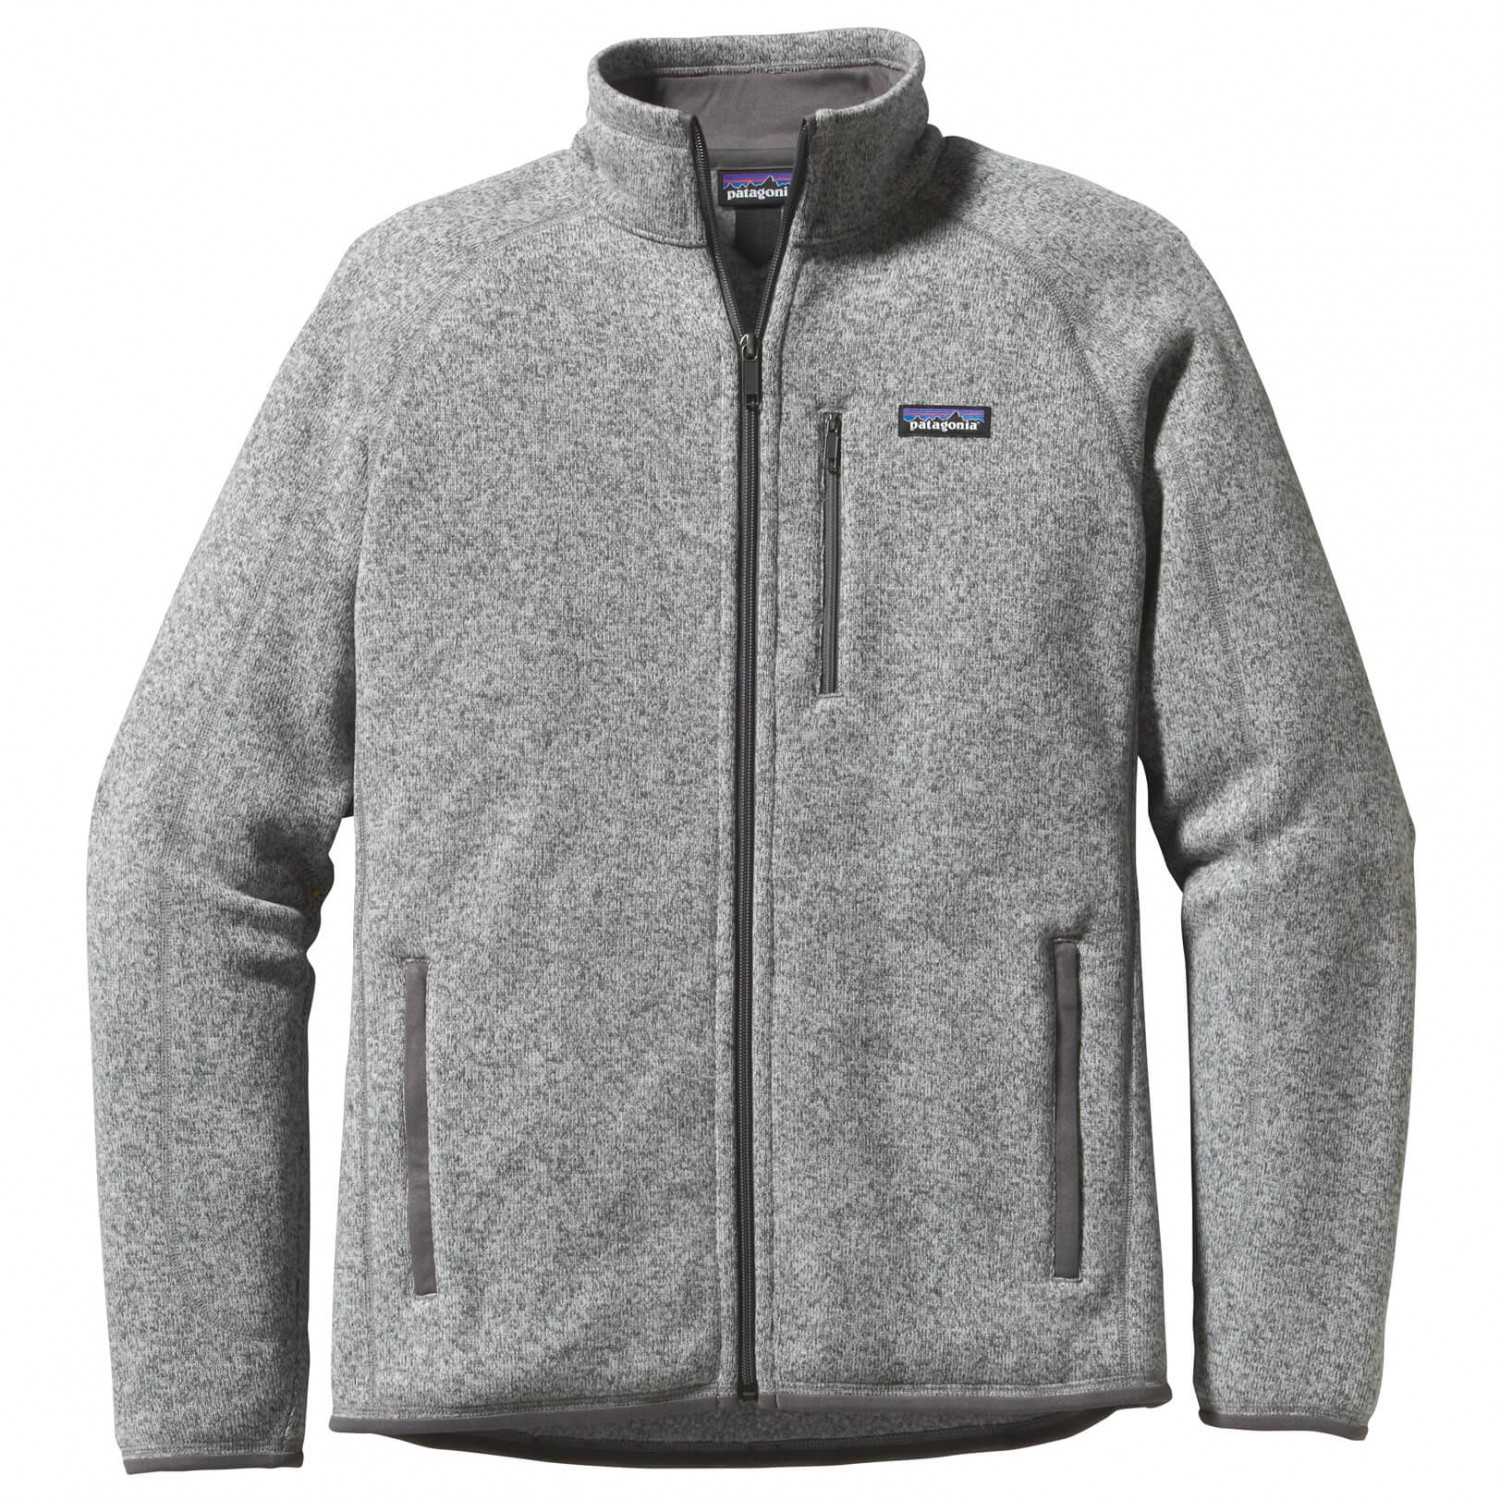 detailed look e0de1 a6ec0 Patagonia - Better Sweater Jacket - Fleece jacket - Black | S